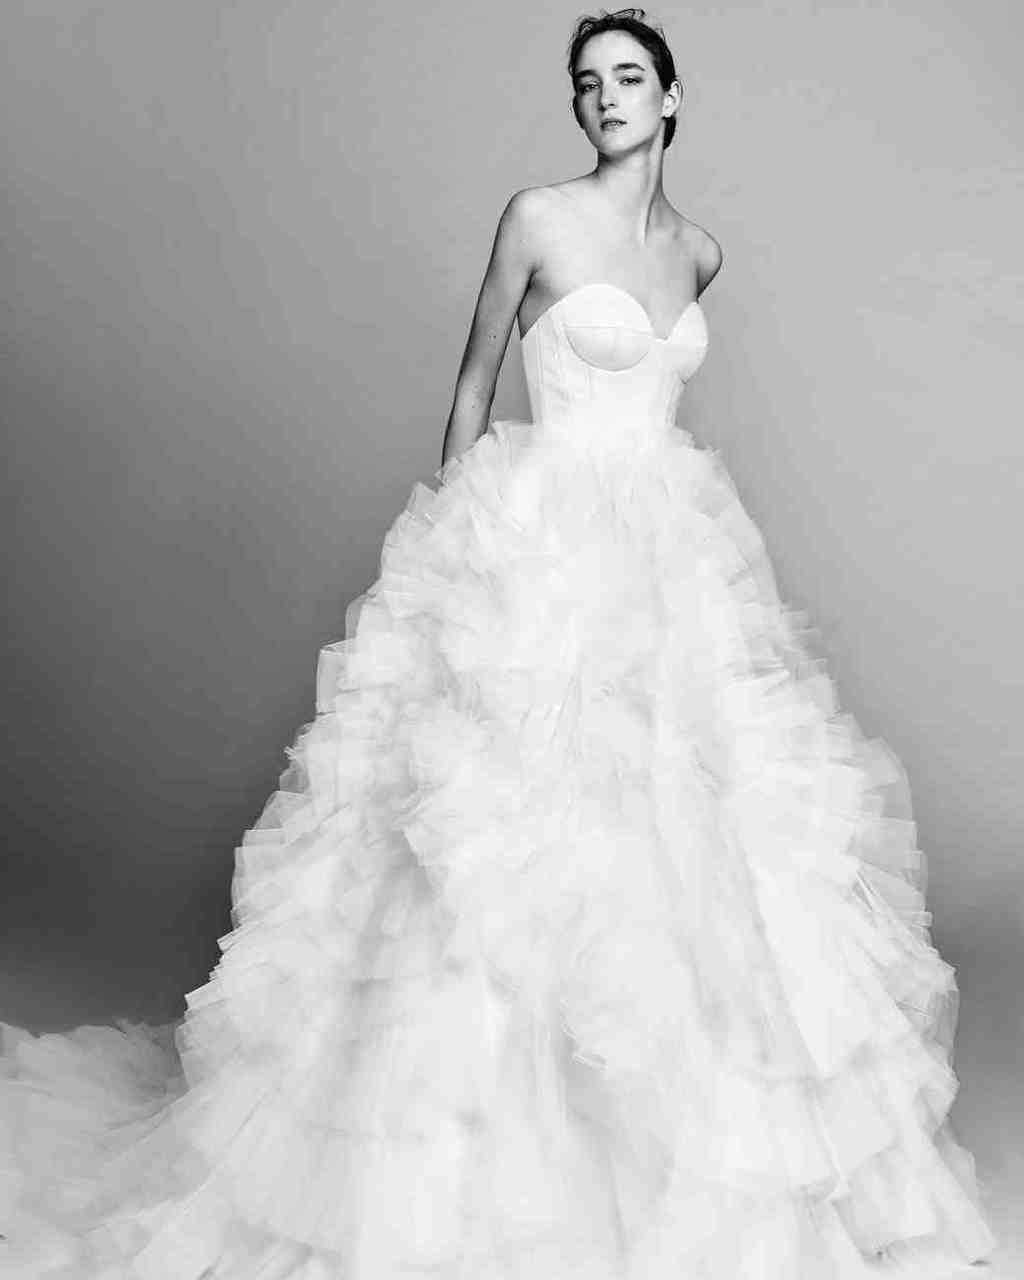 viktor-and-rolf-fall-2017-wedding-dress-010_vert